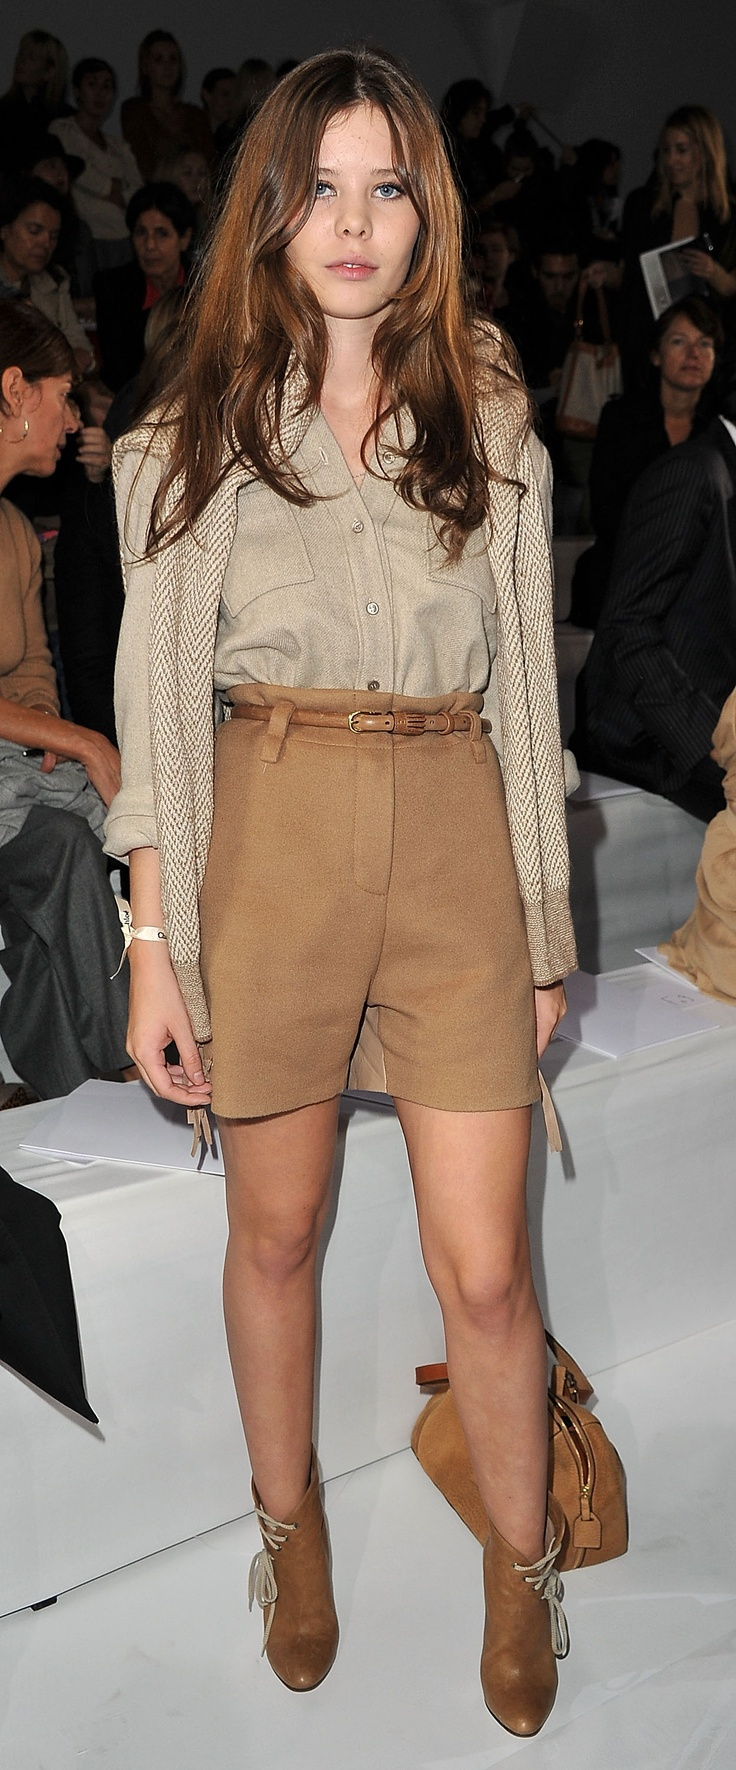 Wear winter shorts like Lou Lesage at #Paris #Fashion week -